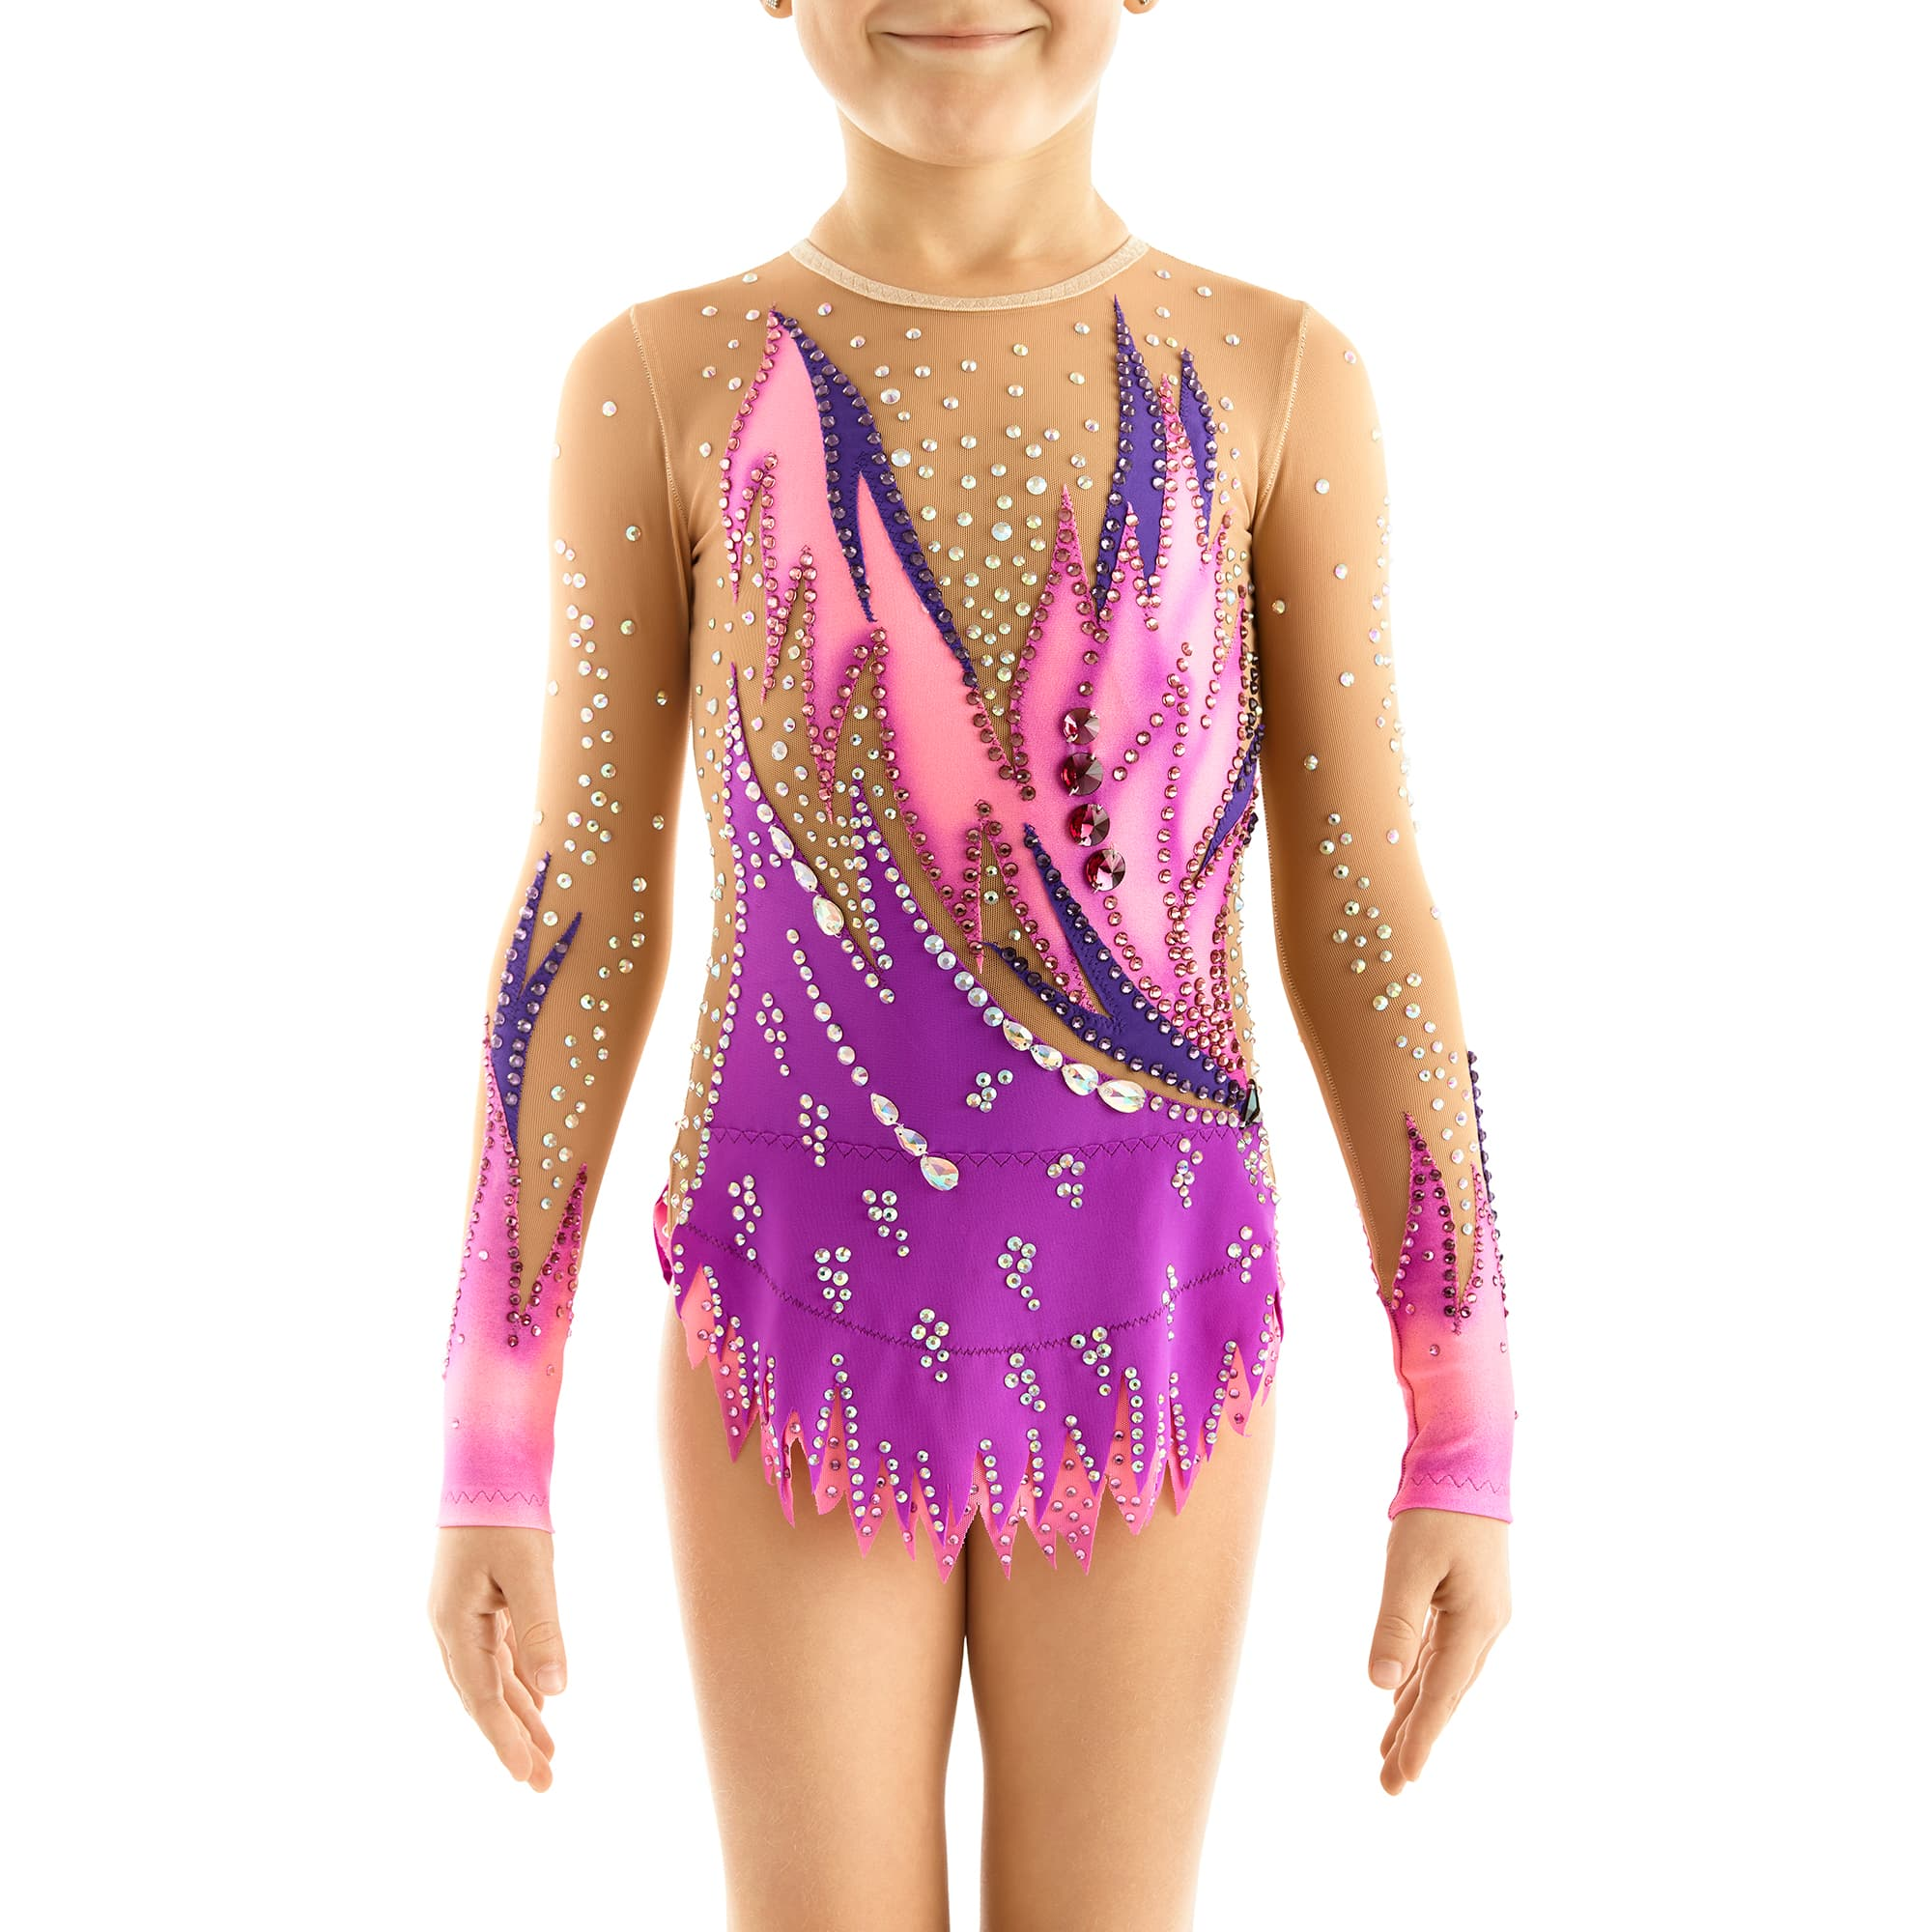 Front of Rhythmic Gymnastics Leotard № 251 with two sleeves, 2 layered skirt made in violet, magenta, pink colours with Swarovski crystals